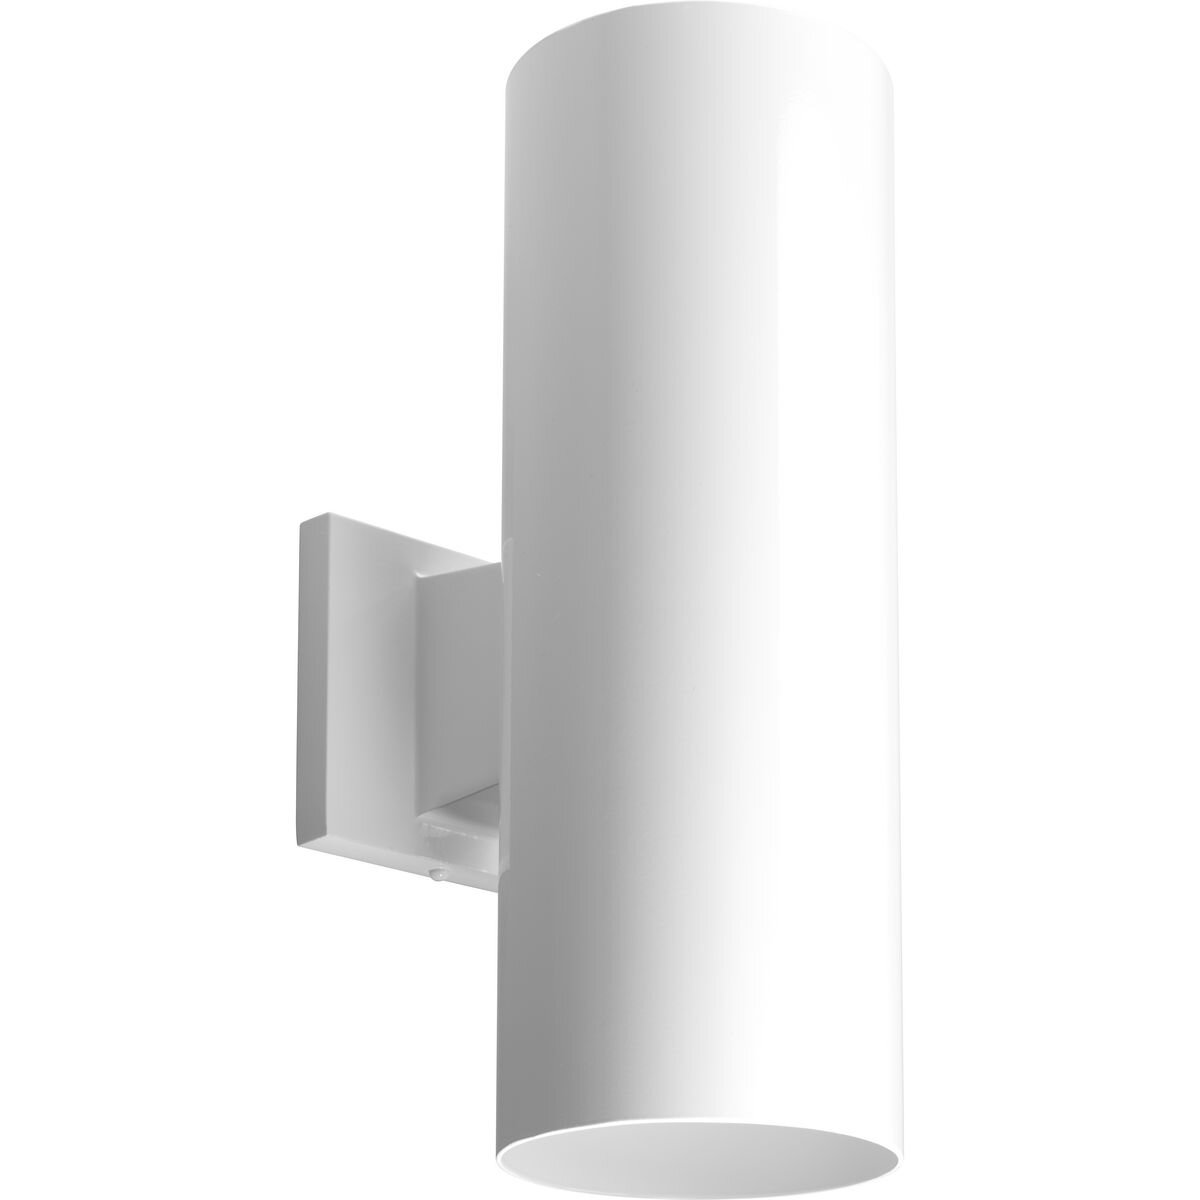 Modern Contemporary White Cream Outdoor Wall Lighting You Ll Love In 2021 Wayfair